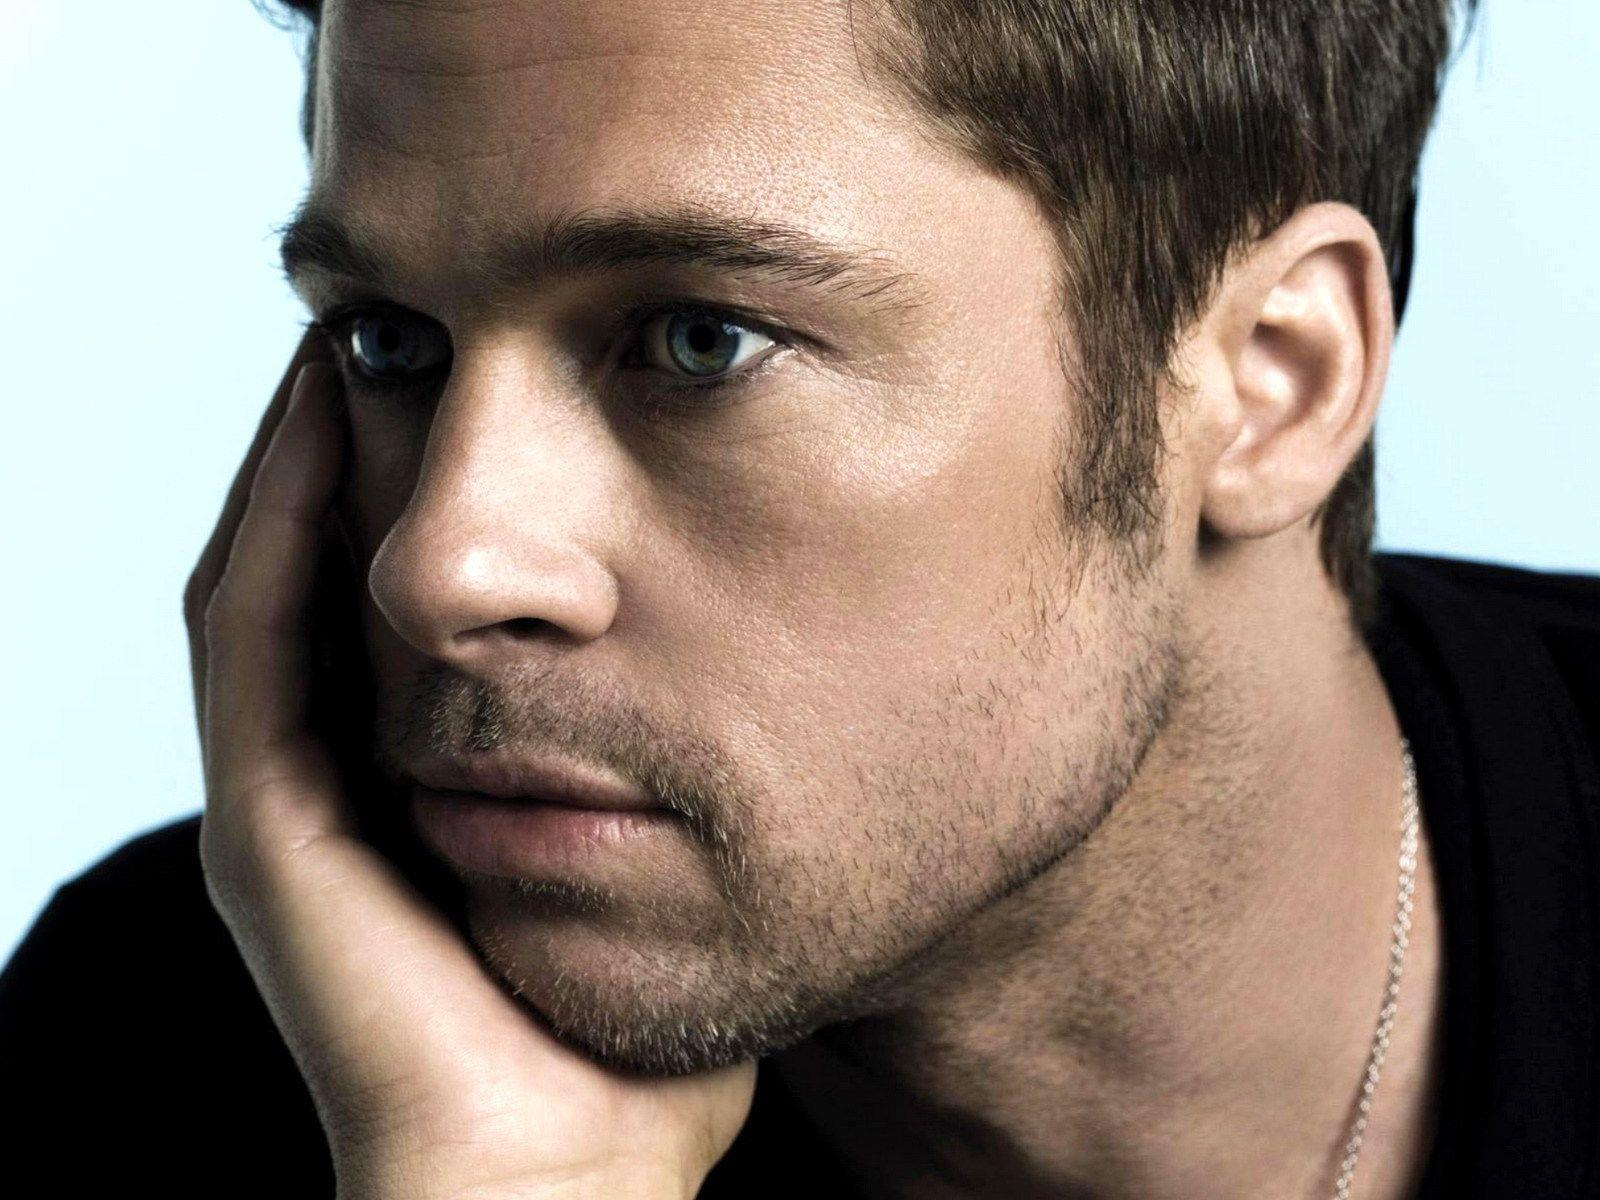 pitt - Brad Pitt Wallpaper (10613851) - Fanpop